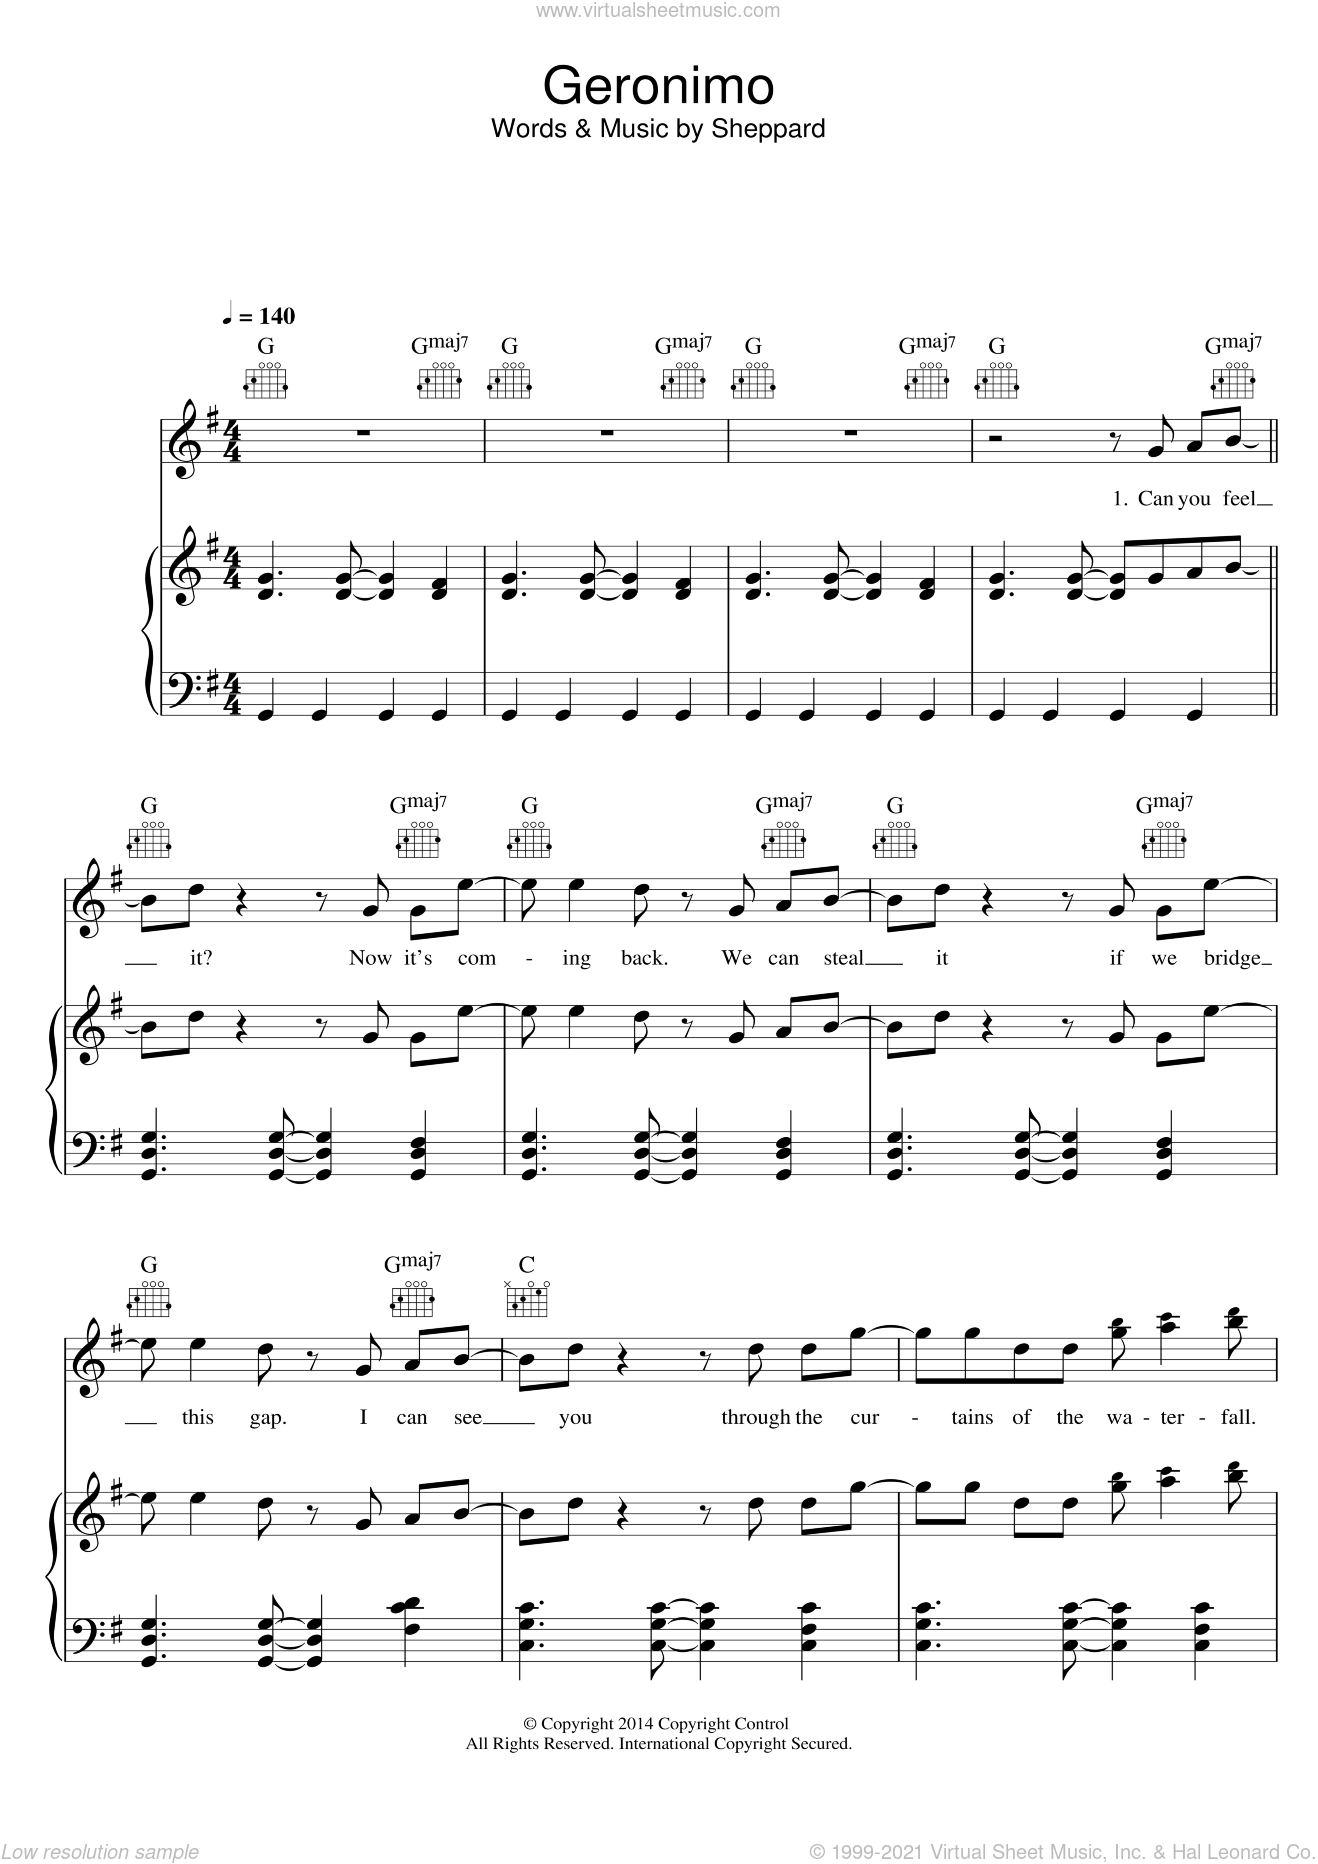 Geronimo sheet music for voice, piano or guitar by Sheppard, intermediate skill level